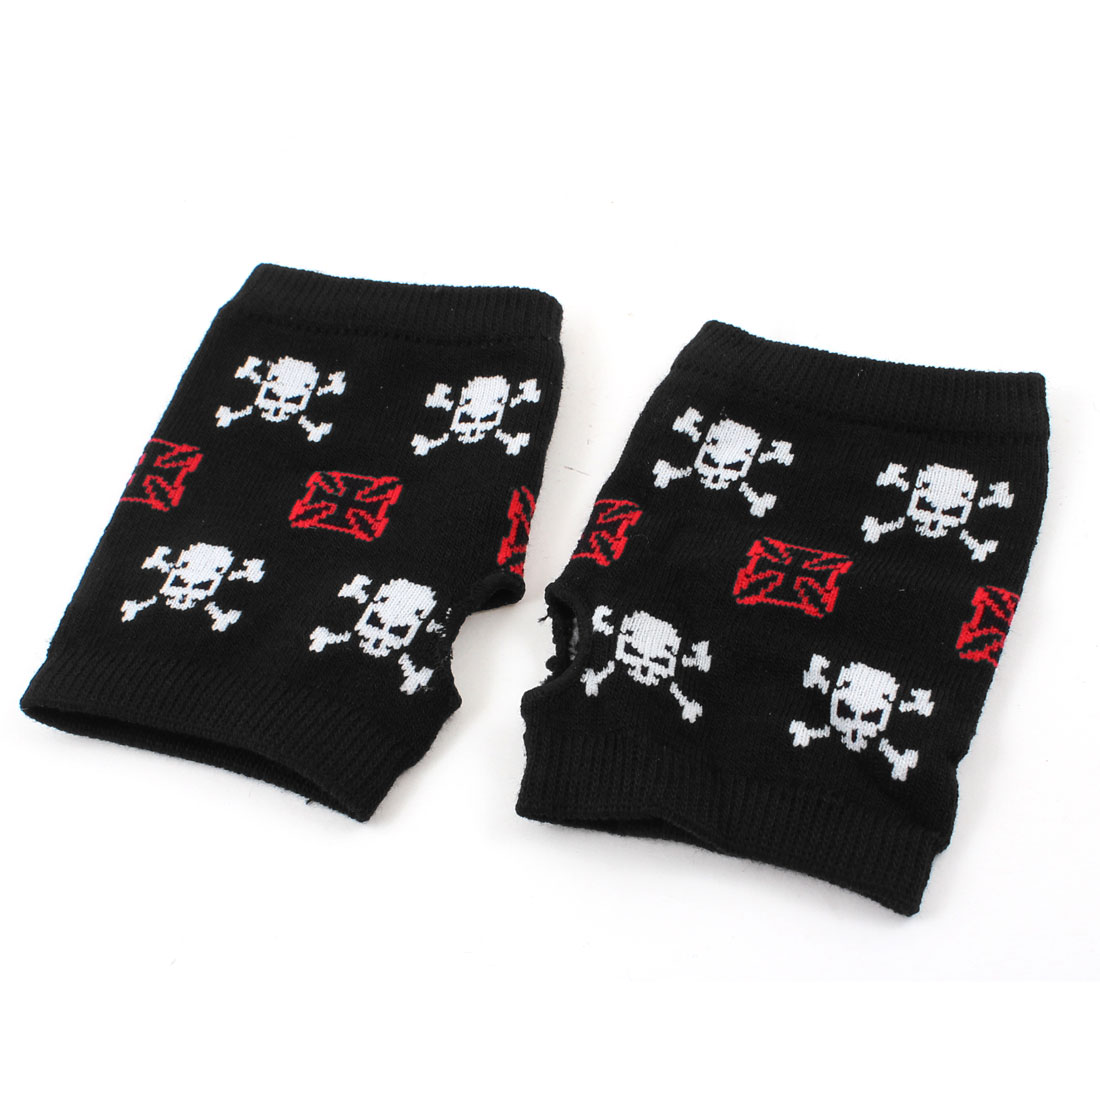 White Skull Red One Pice Pattern Stretchy Cuff Thumbhole Fingerless Black Gloves Pair